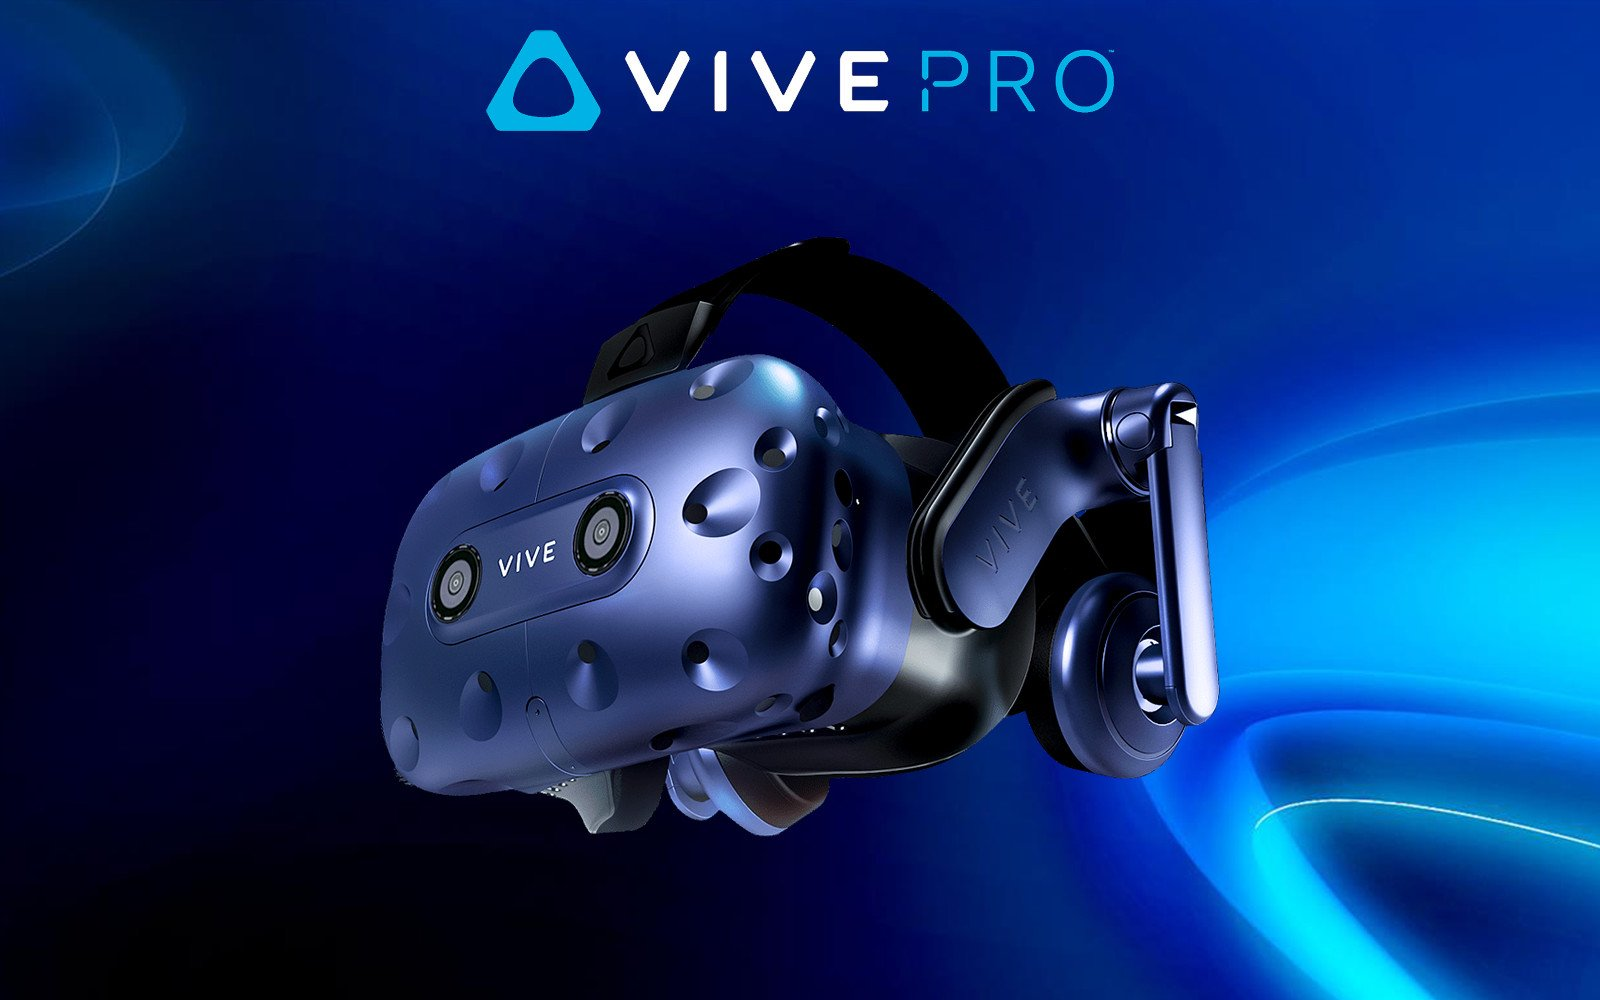 Vive Pro's increased resolution doesn't quite eliminate screen door effect, but it's a great improvement